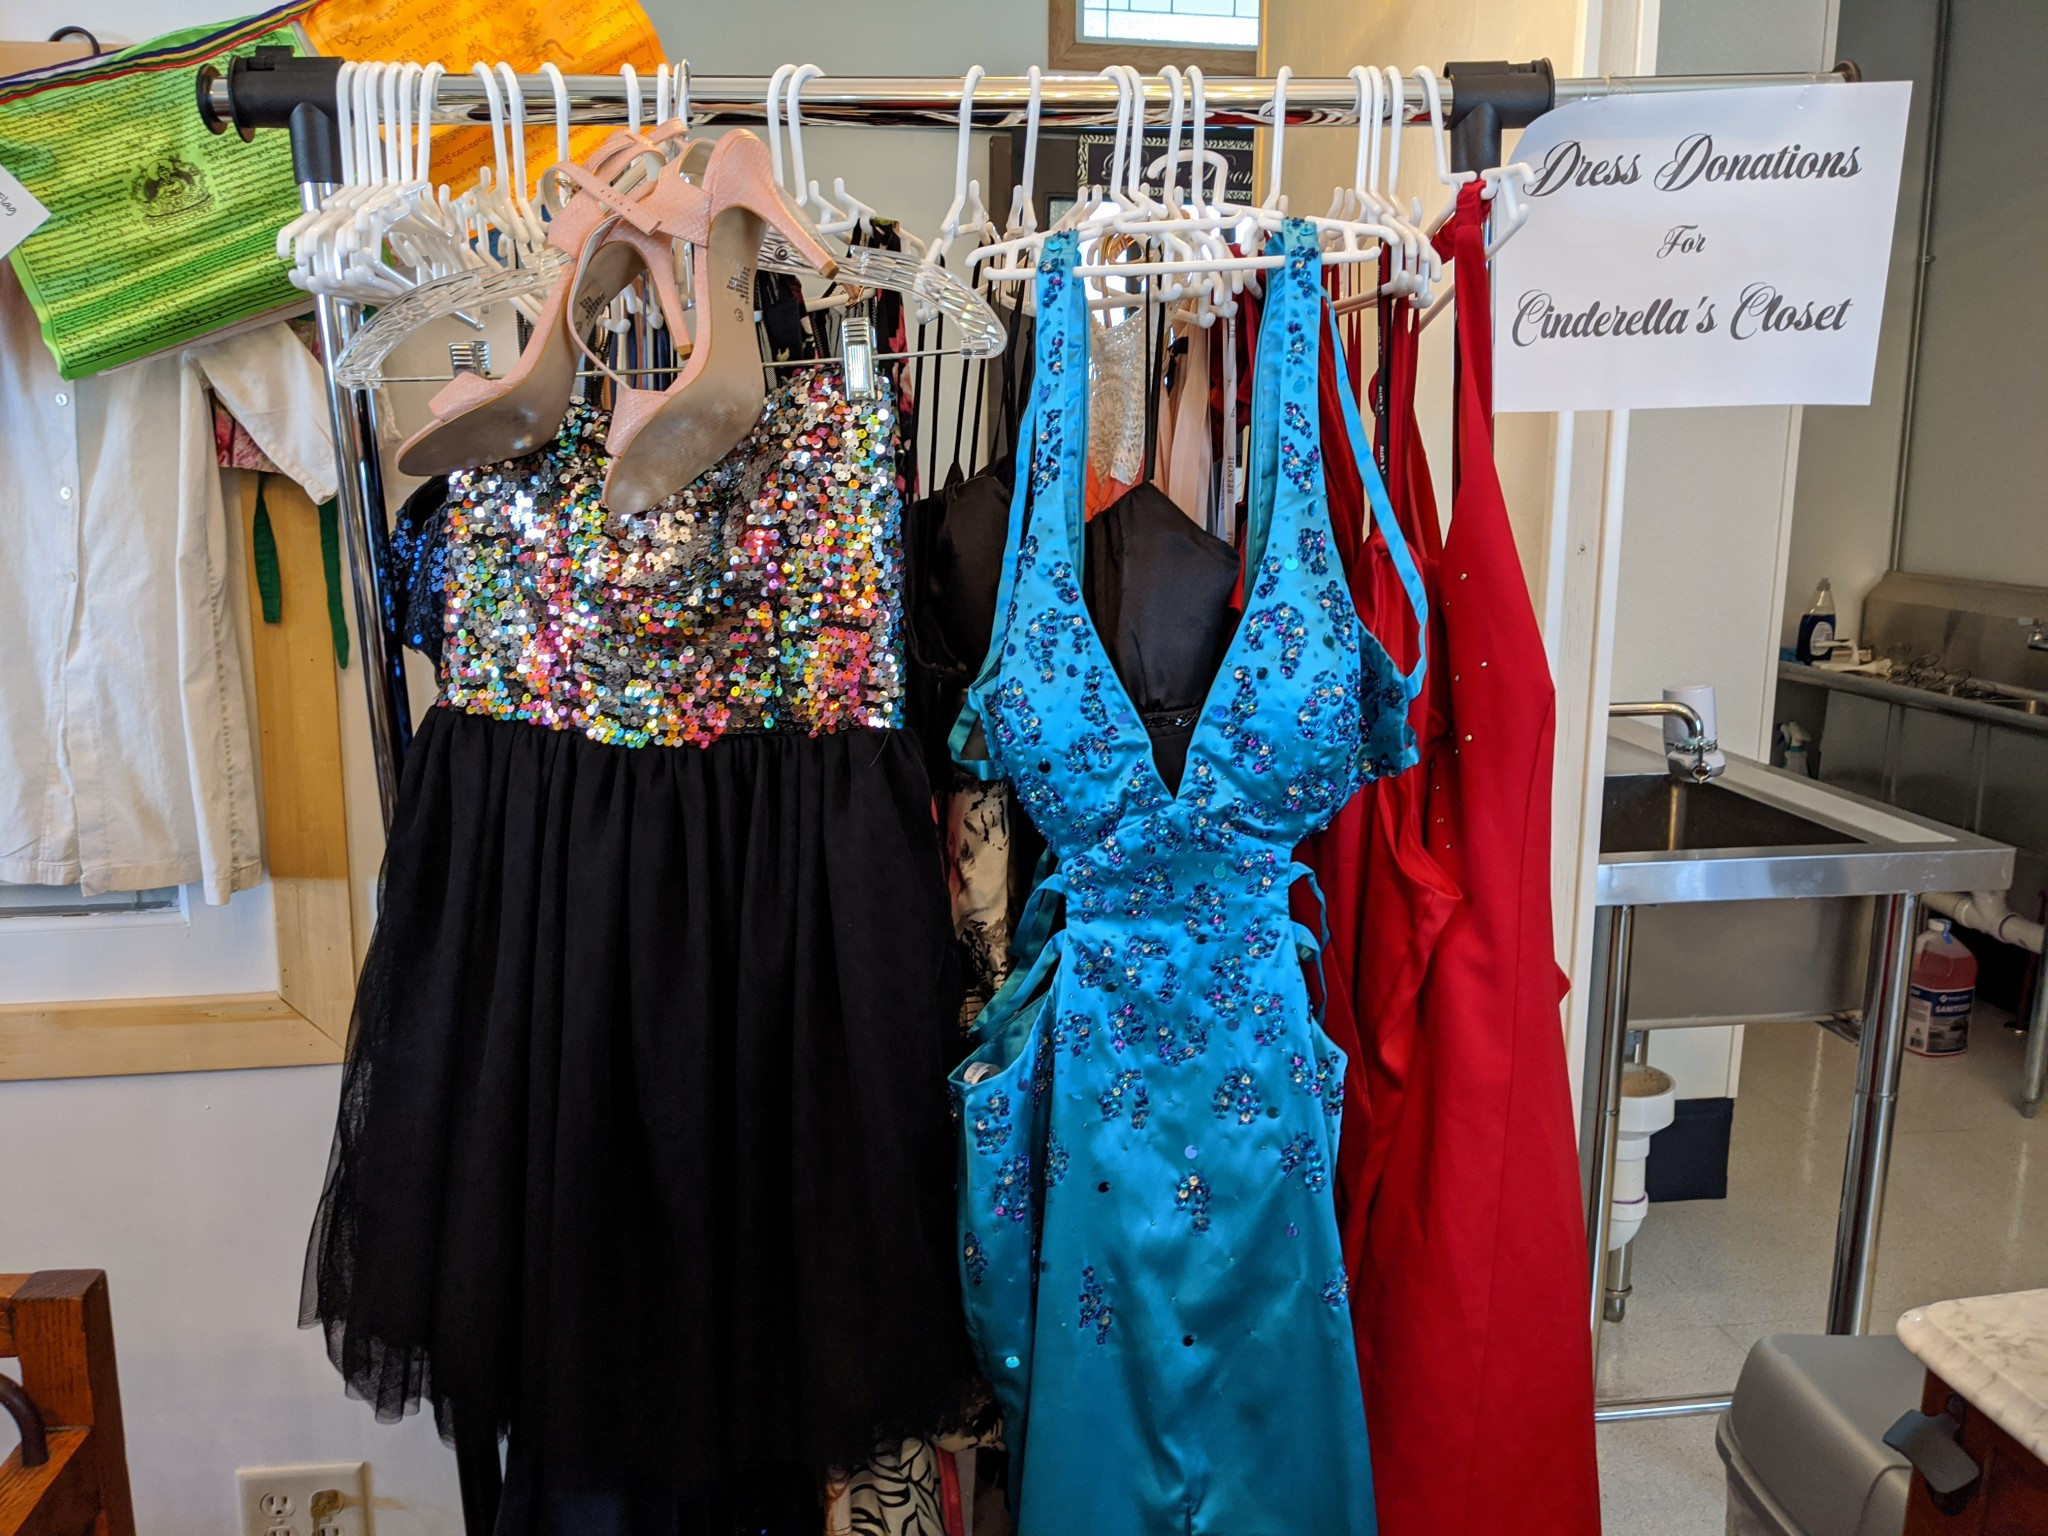 Random Acts of Walbridge, in partnership with Cinderella's Closet of Northeast Ohio, is collecting new and gently used formal dresses, sizes 0-32. Dresses should be on-trend, in excellent condition and, if possible, cleaned prior to donating. (Press photo by Katie Siebenaller)